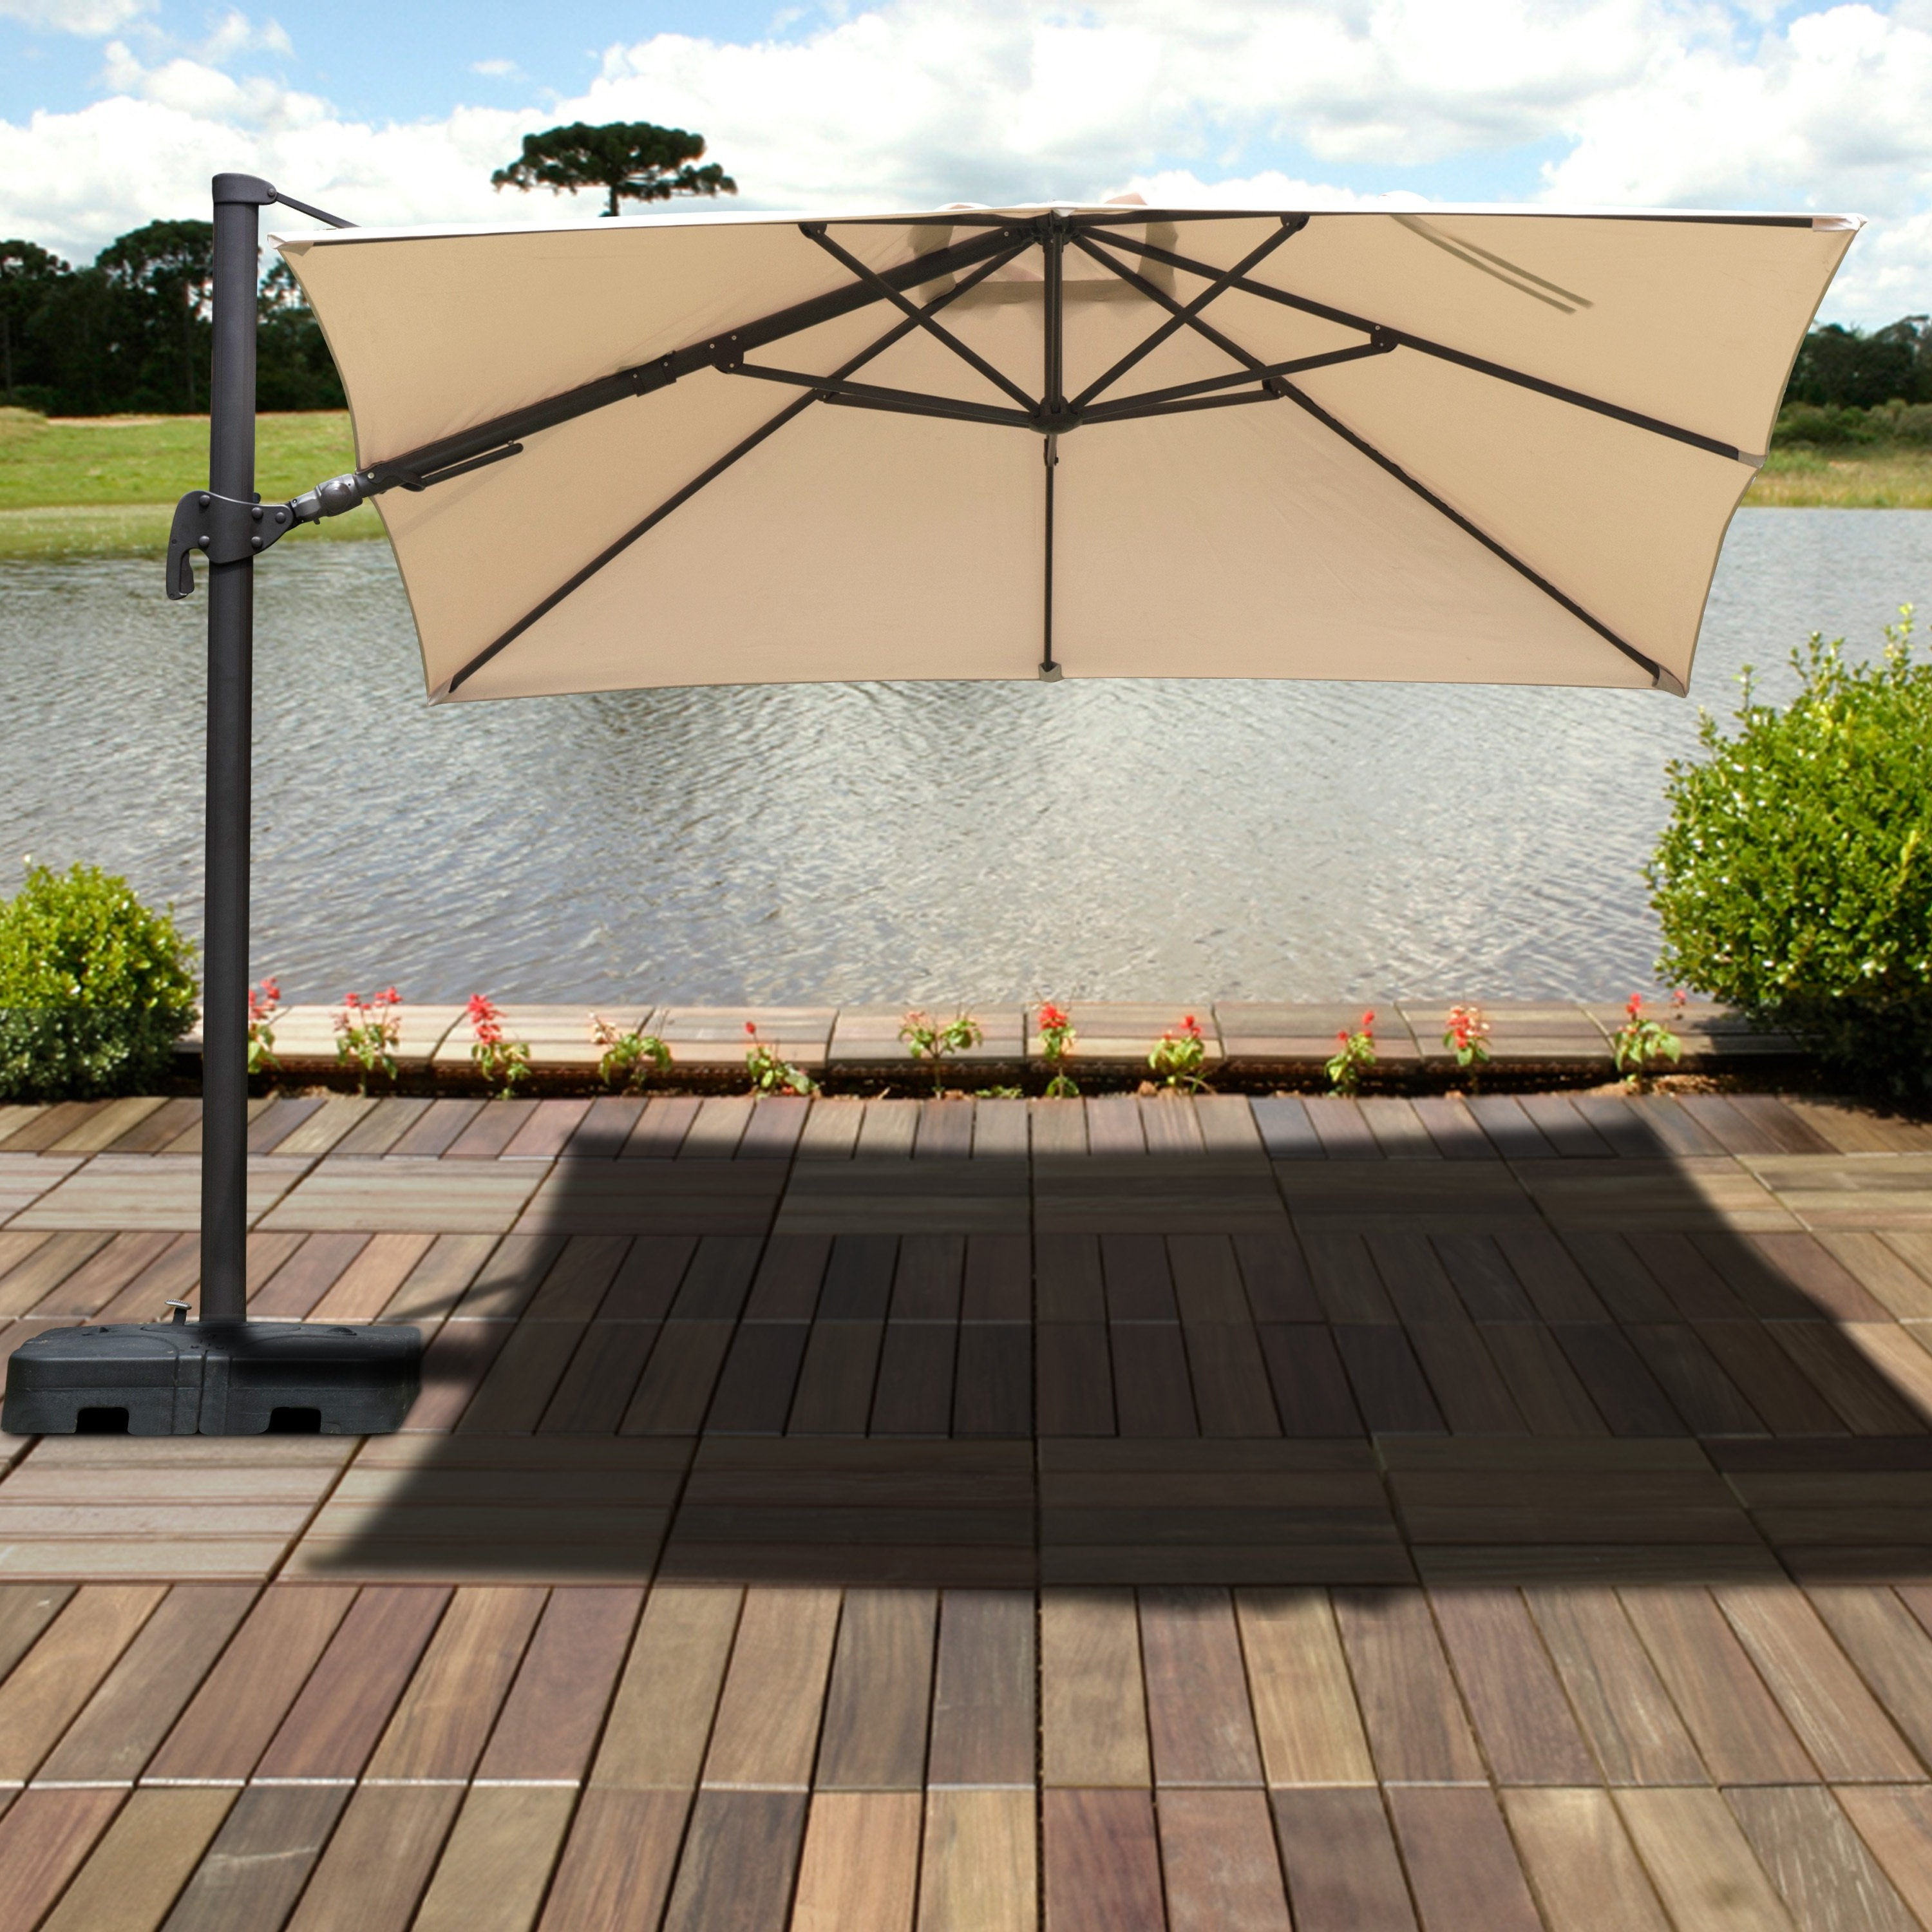 2020 Gemmenne 10' Square Cantilever Umbrella With Regard To Bondi Square Cantilever Umbrellas (Gallery 11 of 20)